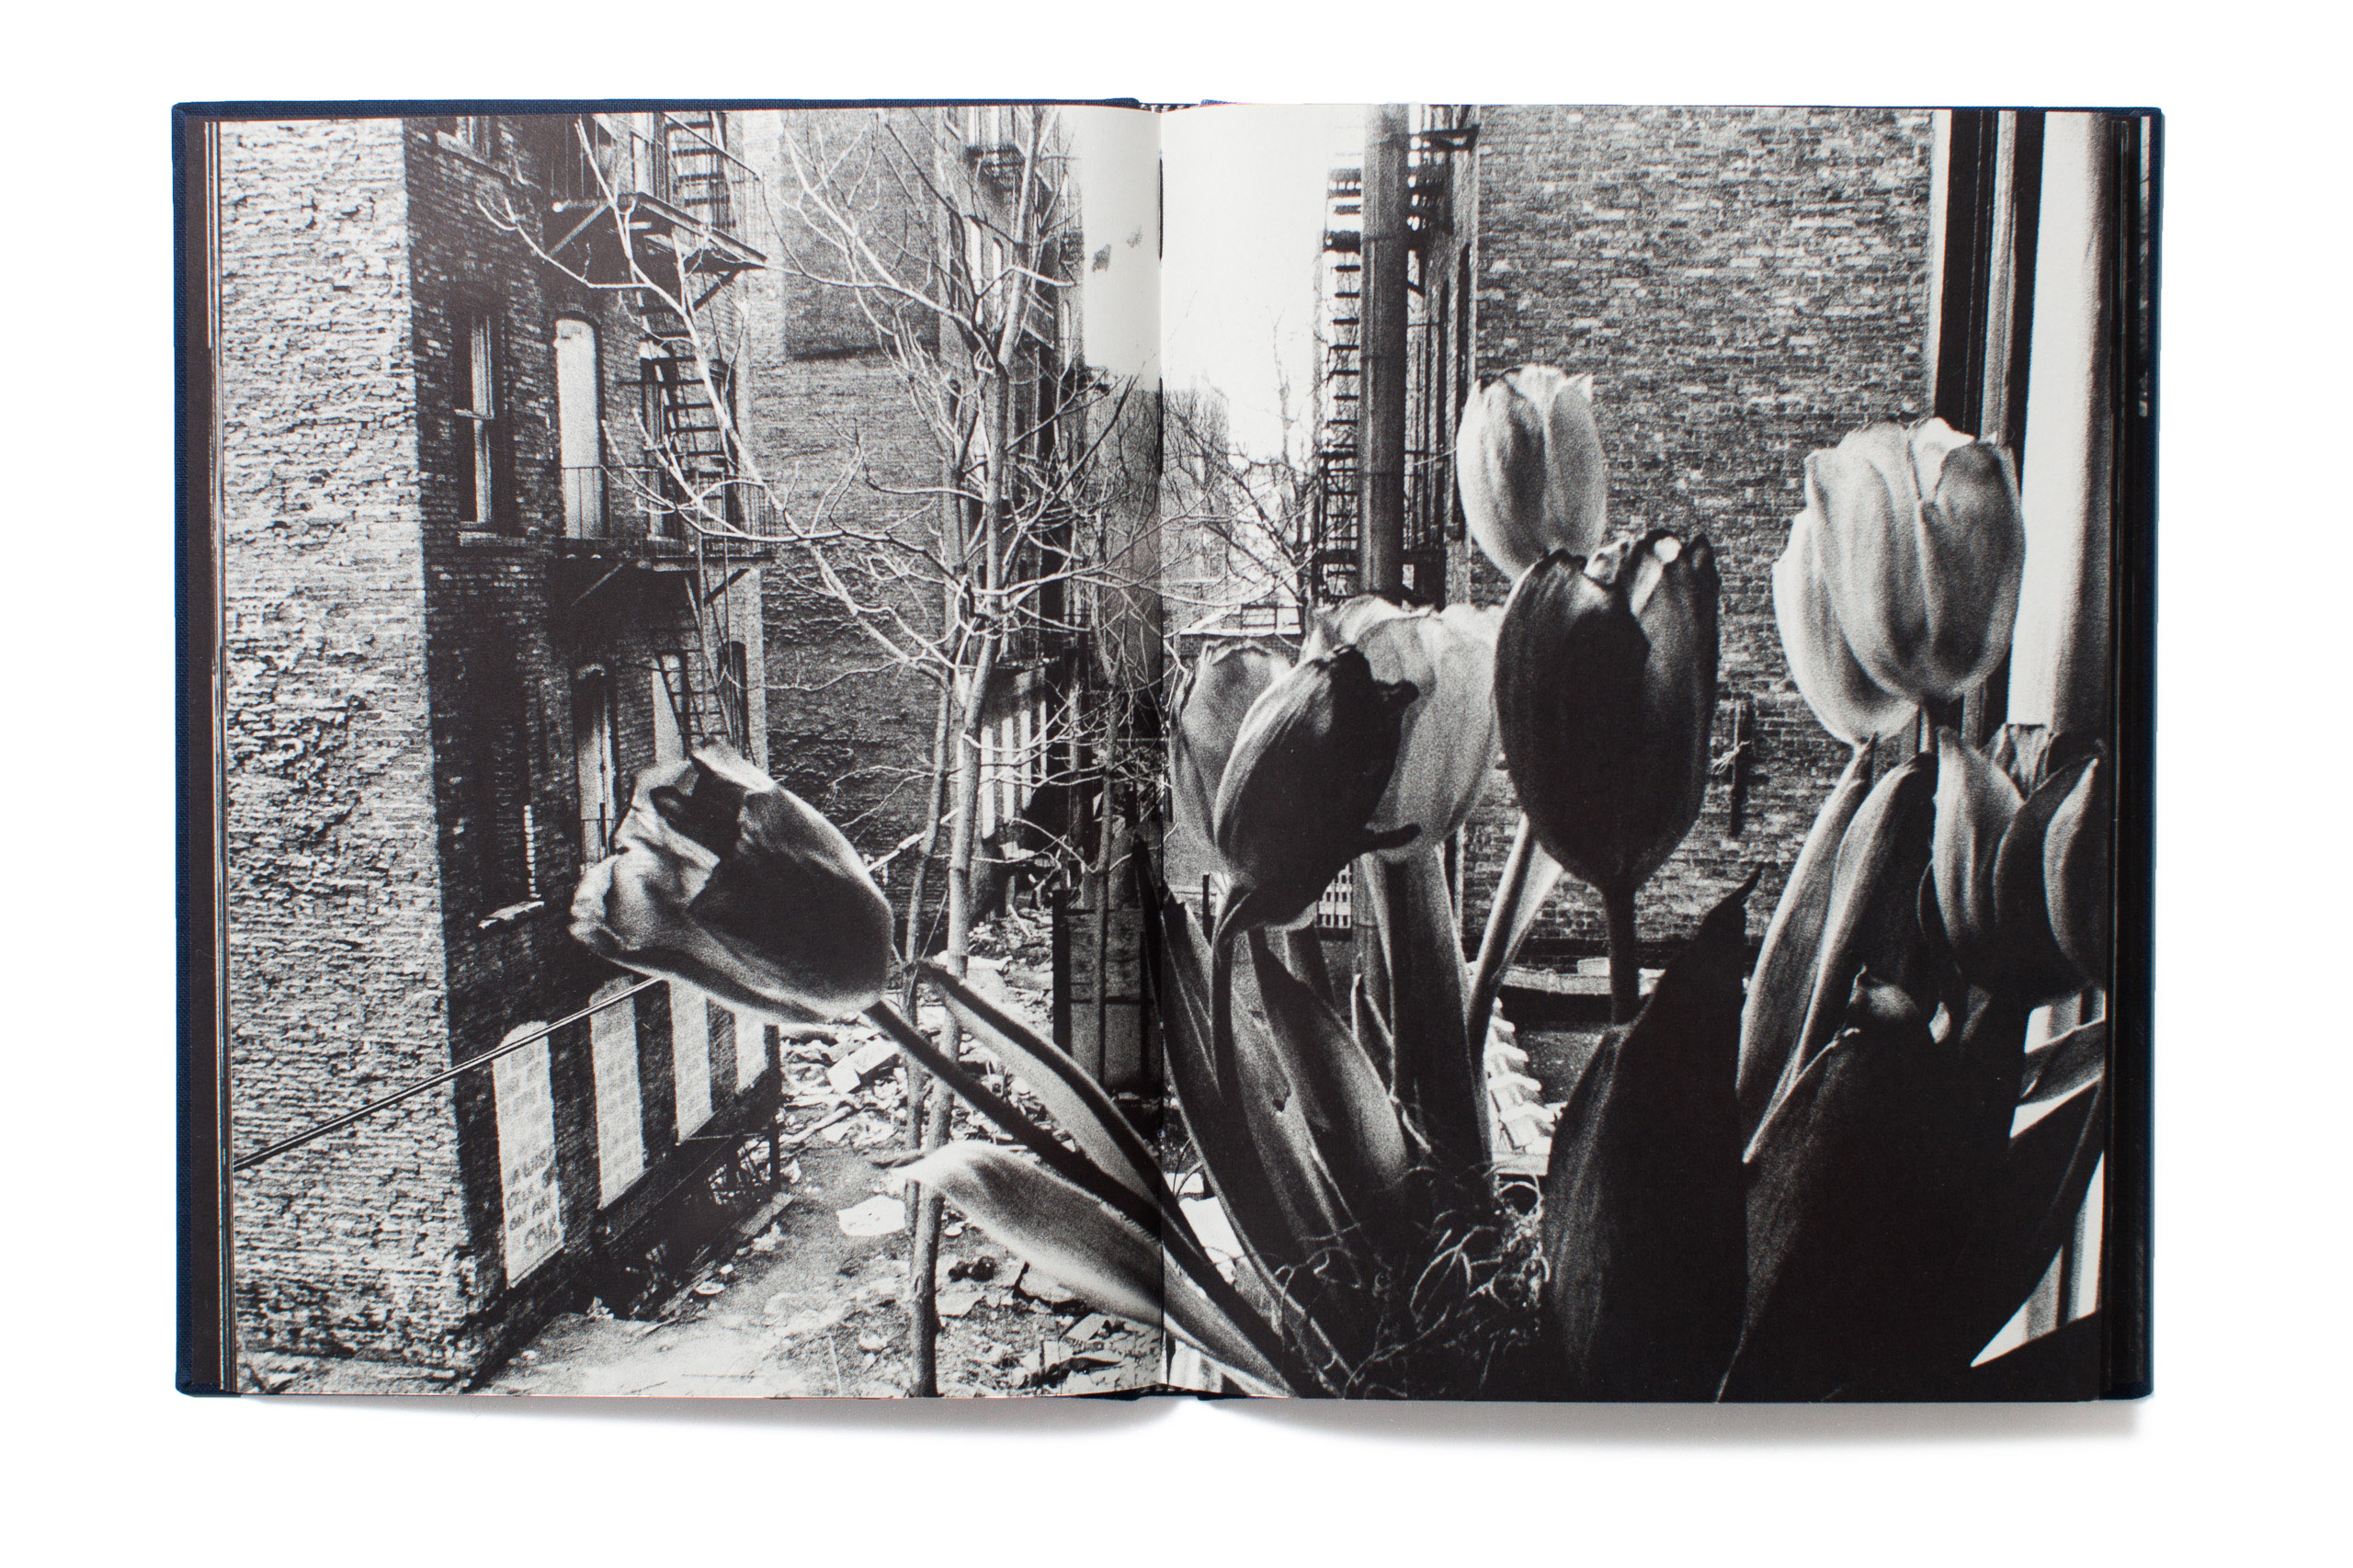 The reissue of Invisible City is rich in texture and is every bit as intoxicating as that first visit to Schles' East Village in New York City in the eighties.  -Michelle Molloy, International Photo Editor, TIME.